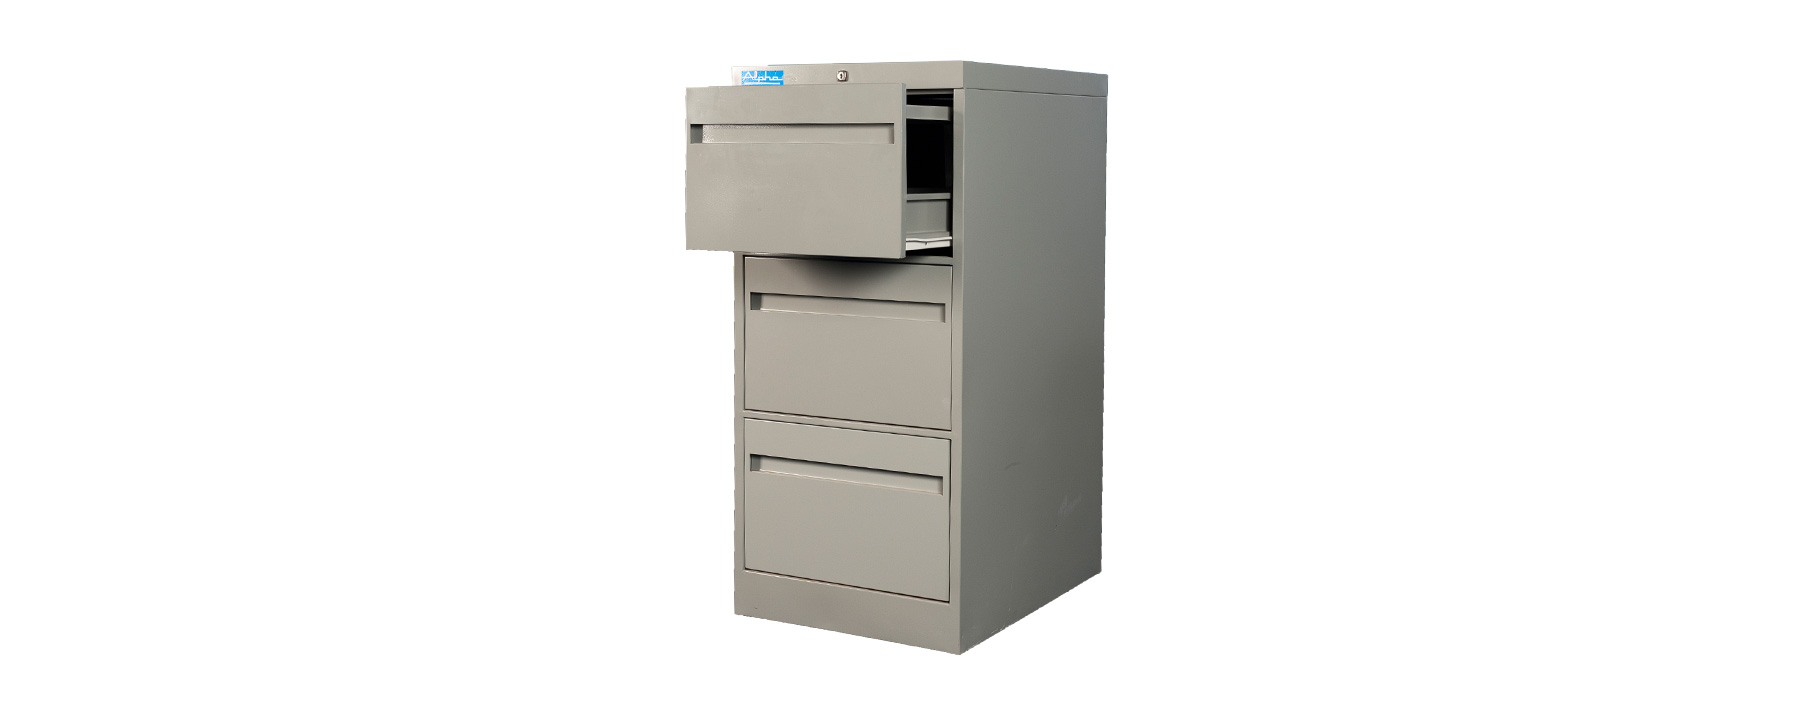 Alpha Steel Filing Cabinet Buy A 4 Drawer Office Storage Delivery Direct